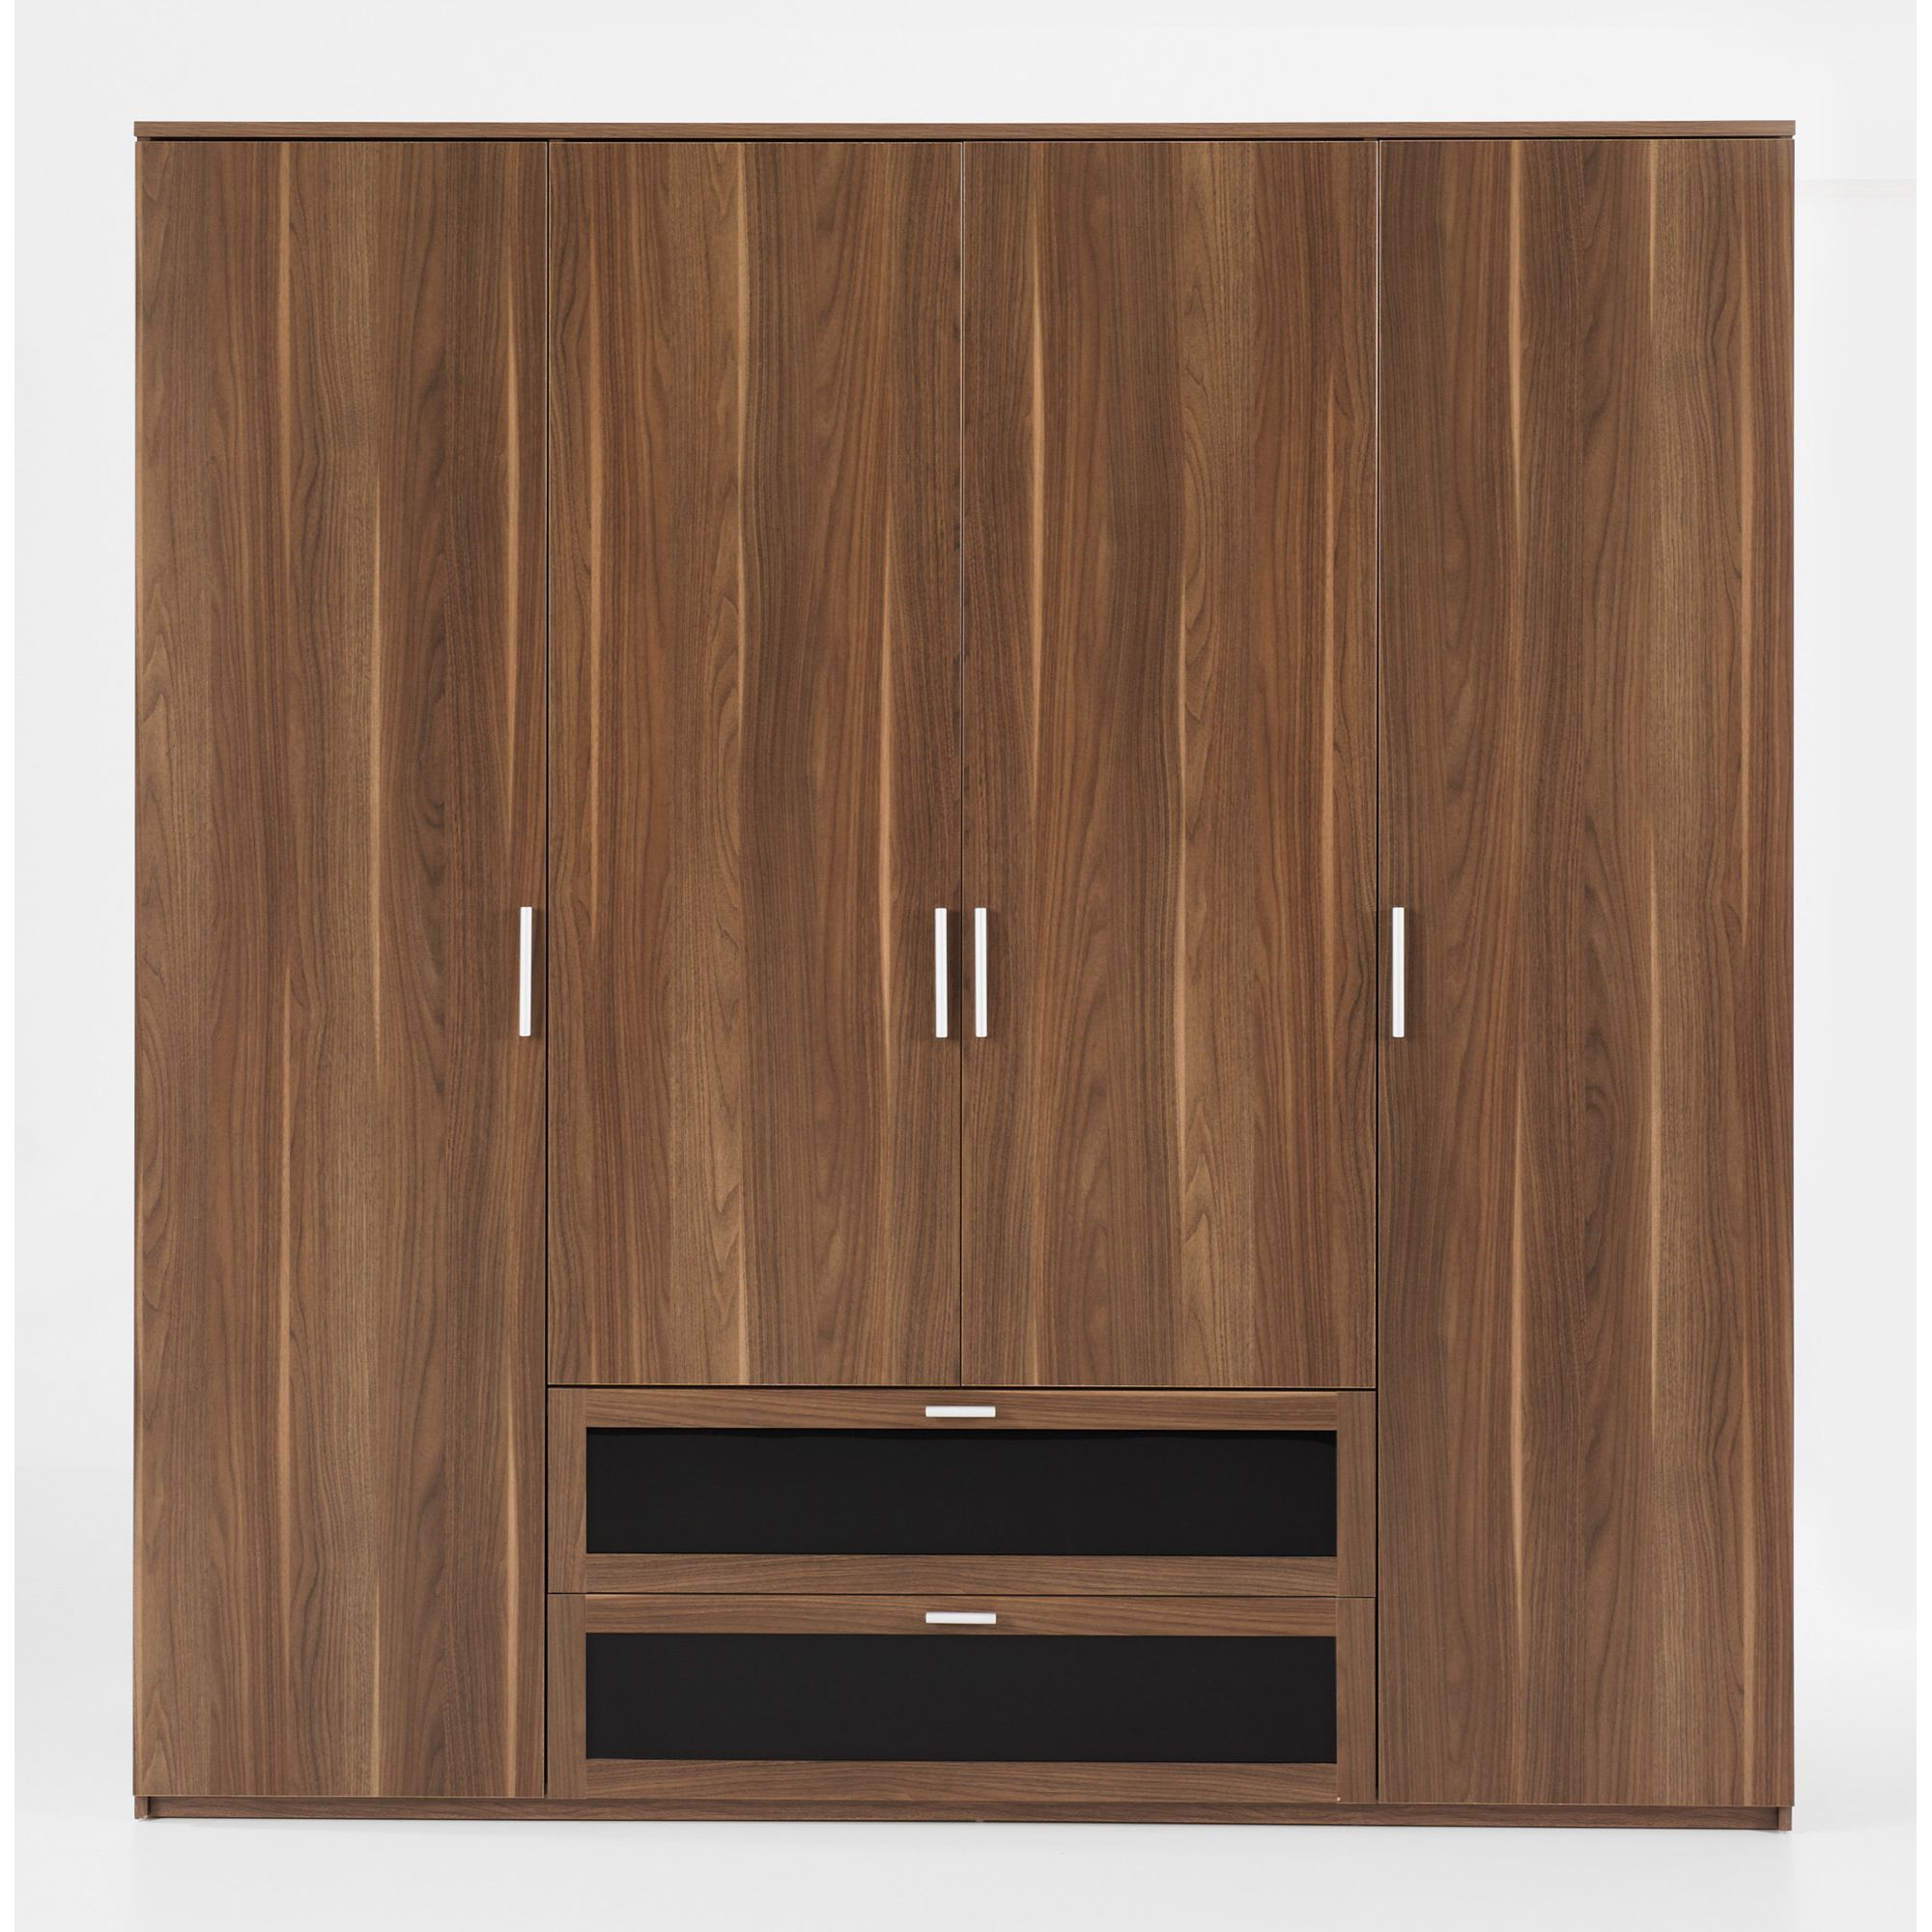 Tvilum New York 4 Door Wardrobe - Dark Walnut at Tesco Direct